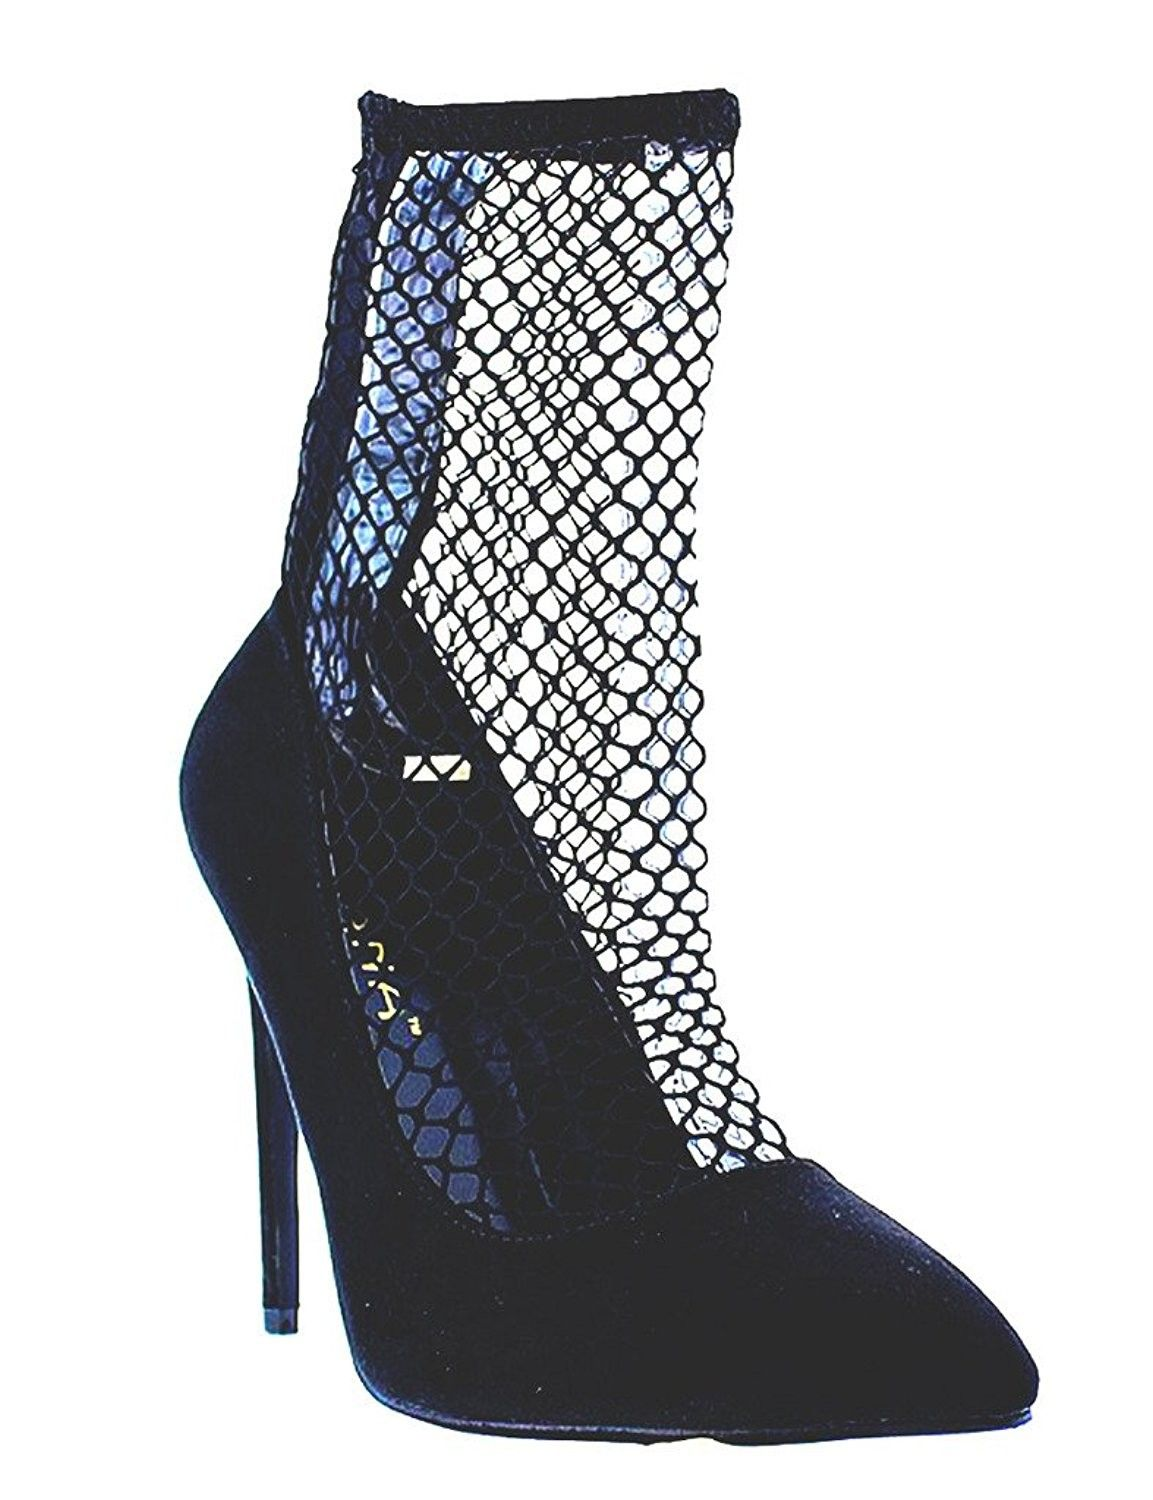 2a653119070 Fishnet Mesh Inset Pointy Toe Bootie Pump Xaya-20 - Black ...